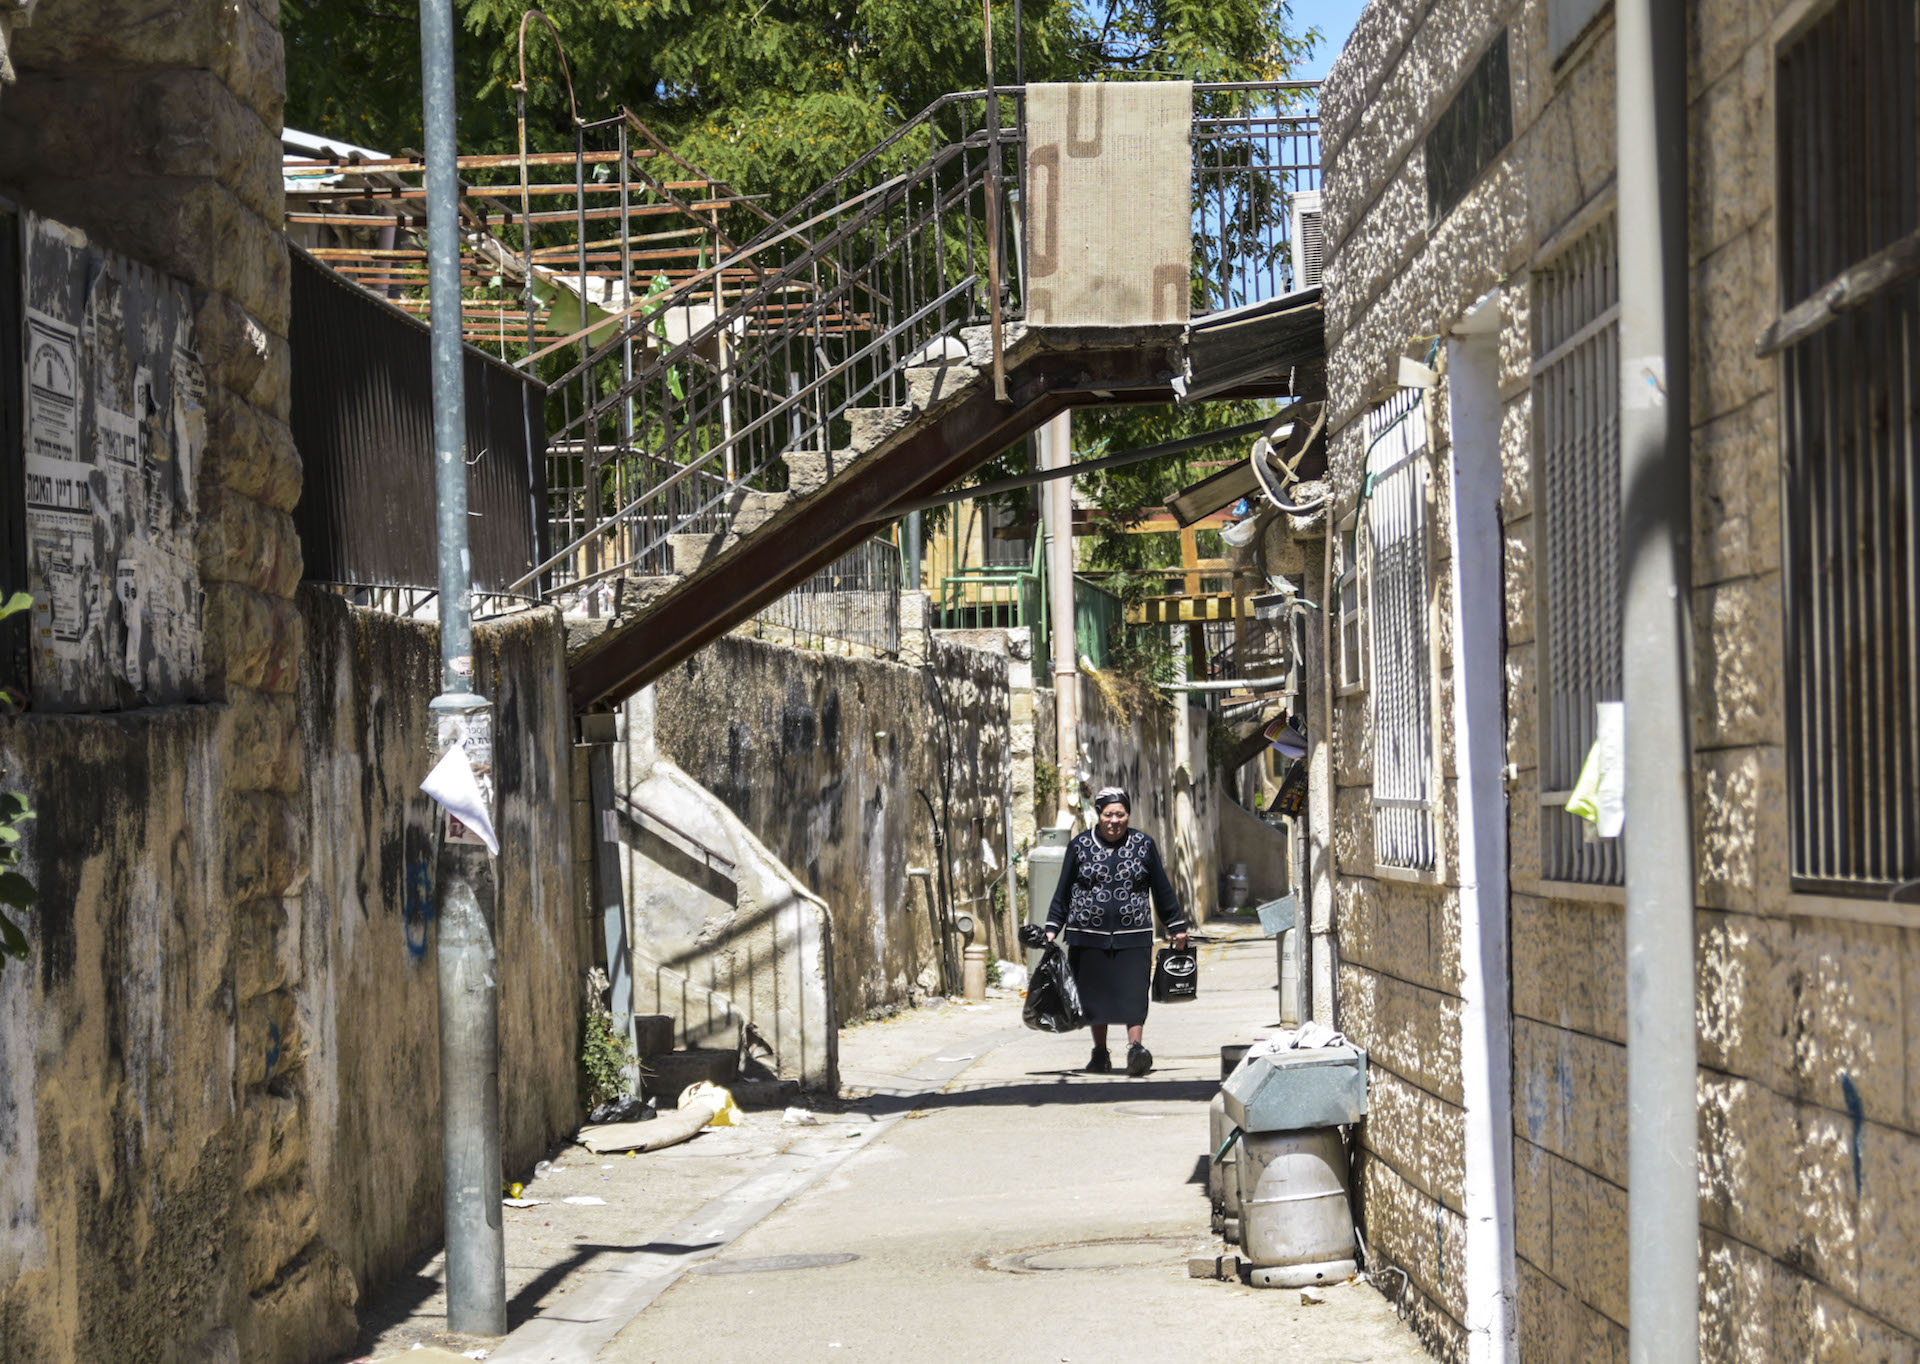 Haredi woman walks back home with groceries in the backstreets of Mea Shearim, an Ultra-Orthodox neighborhood in Jerusalem. Photo: Gustavo Martínez|30 May 2016